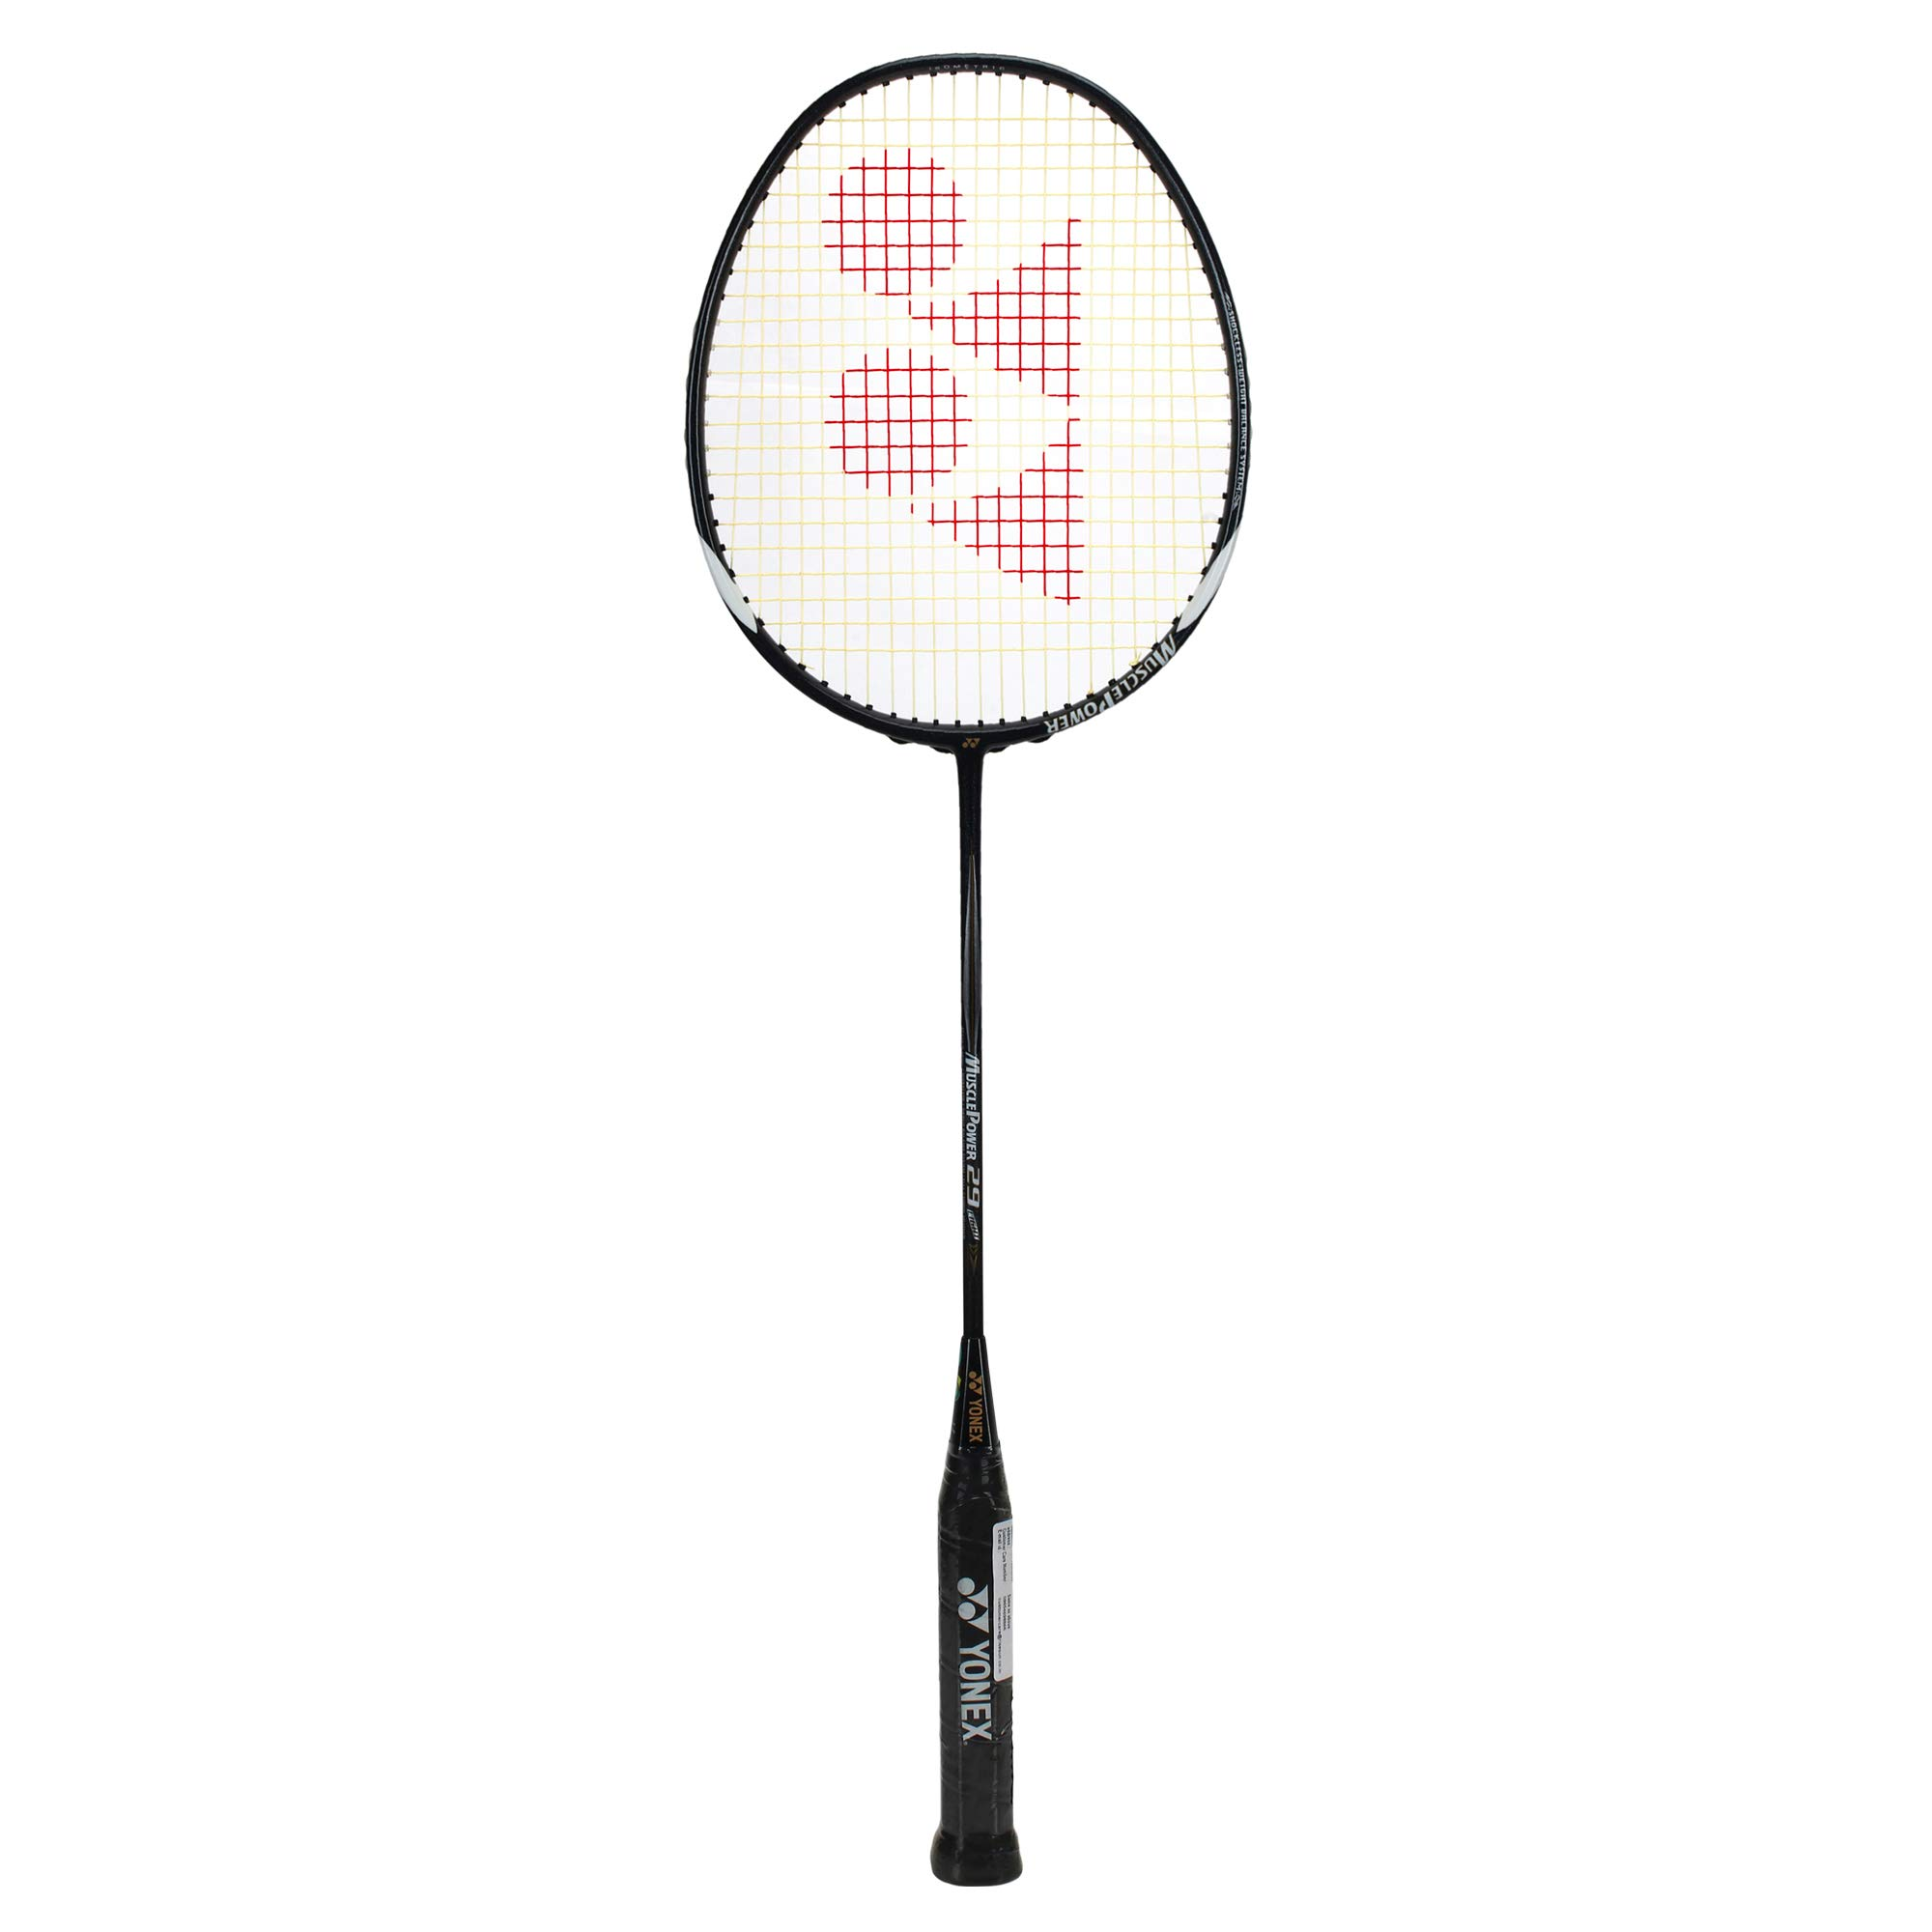 Yonex Badminton Racket Arcsaber Series with Full Cover High Tension Pre Strung Racquets